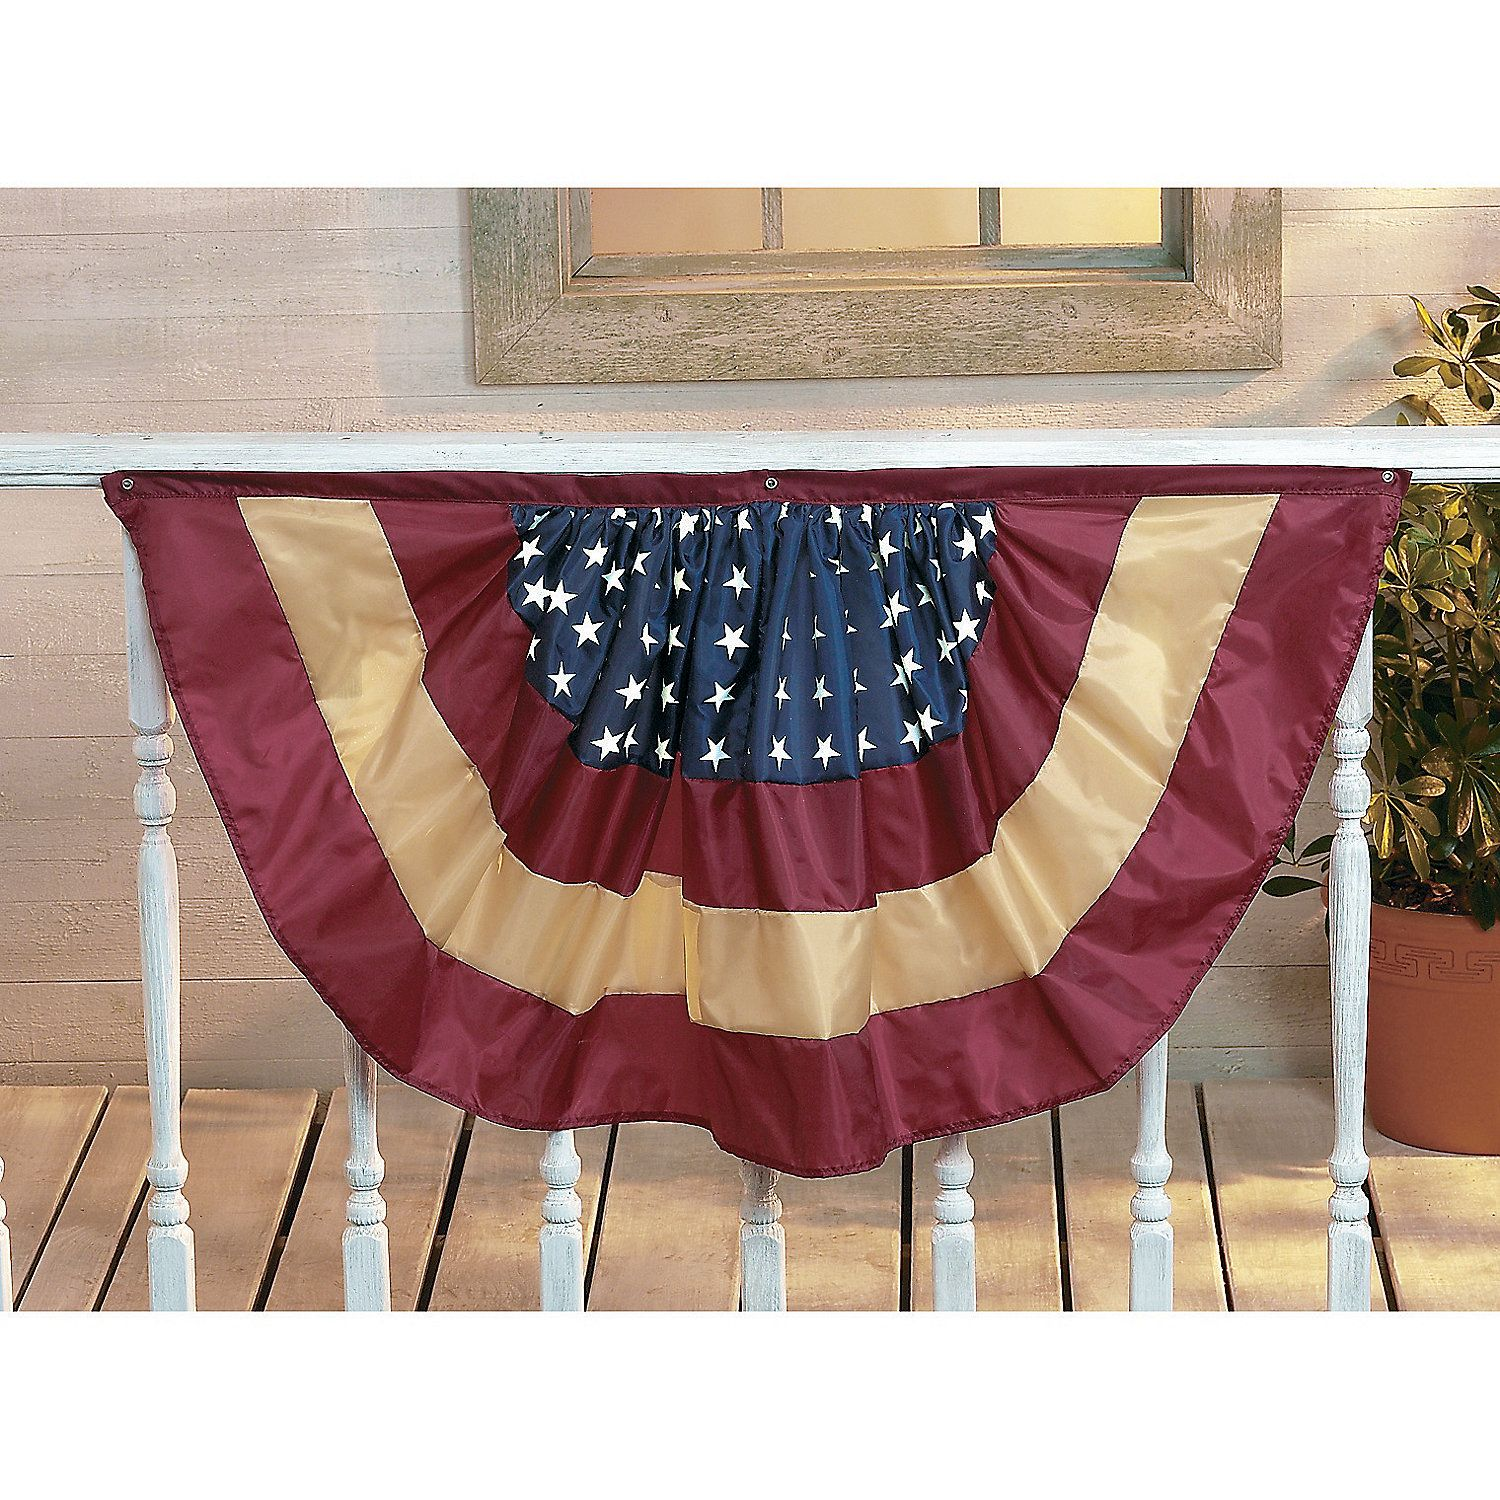 Americana Bunting - $7.25 Each OrientalTrading.com